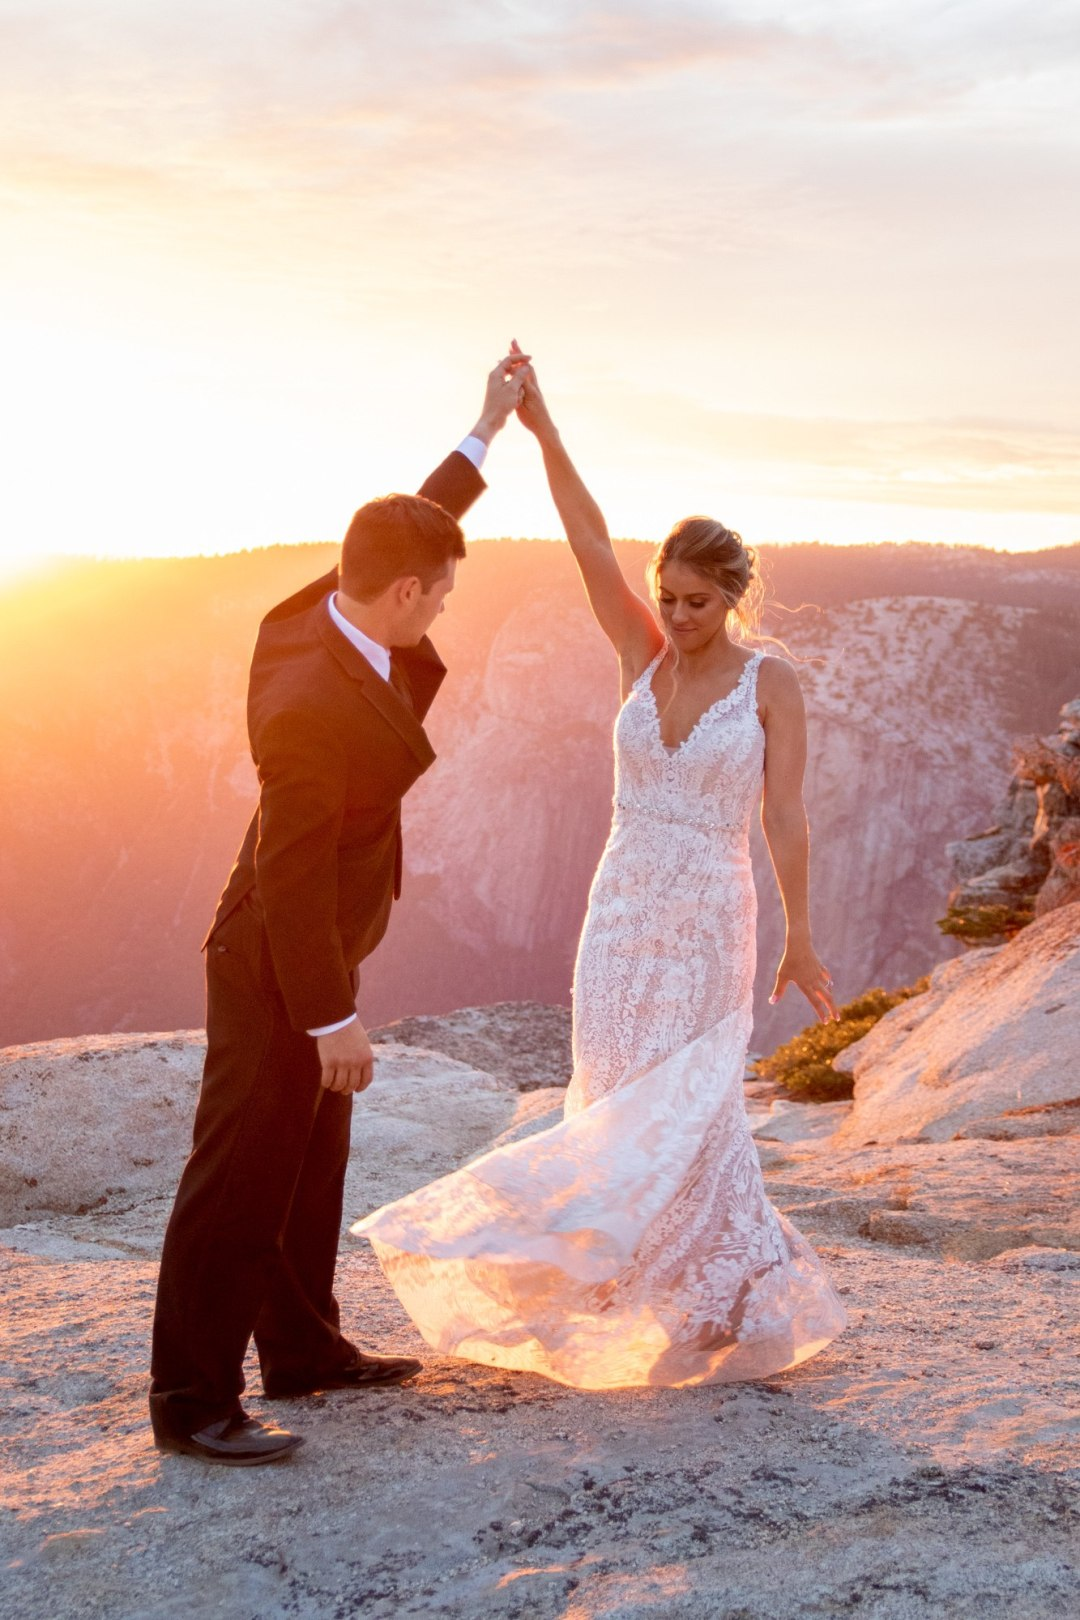 Beautiful golden sunset for this bride and grooms first dance on Taft Point, Yosemite.